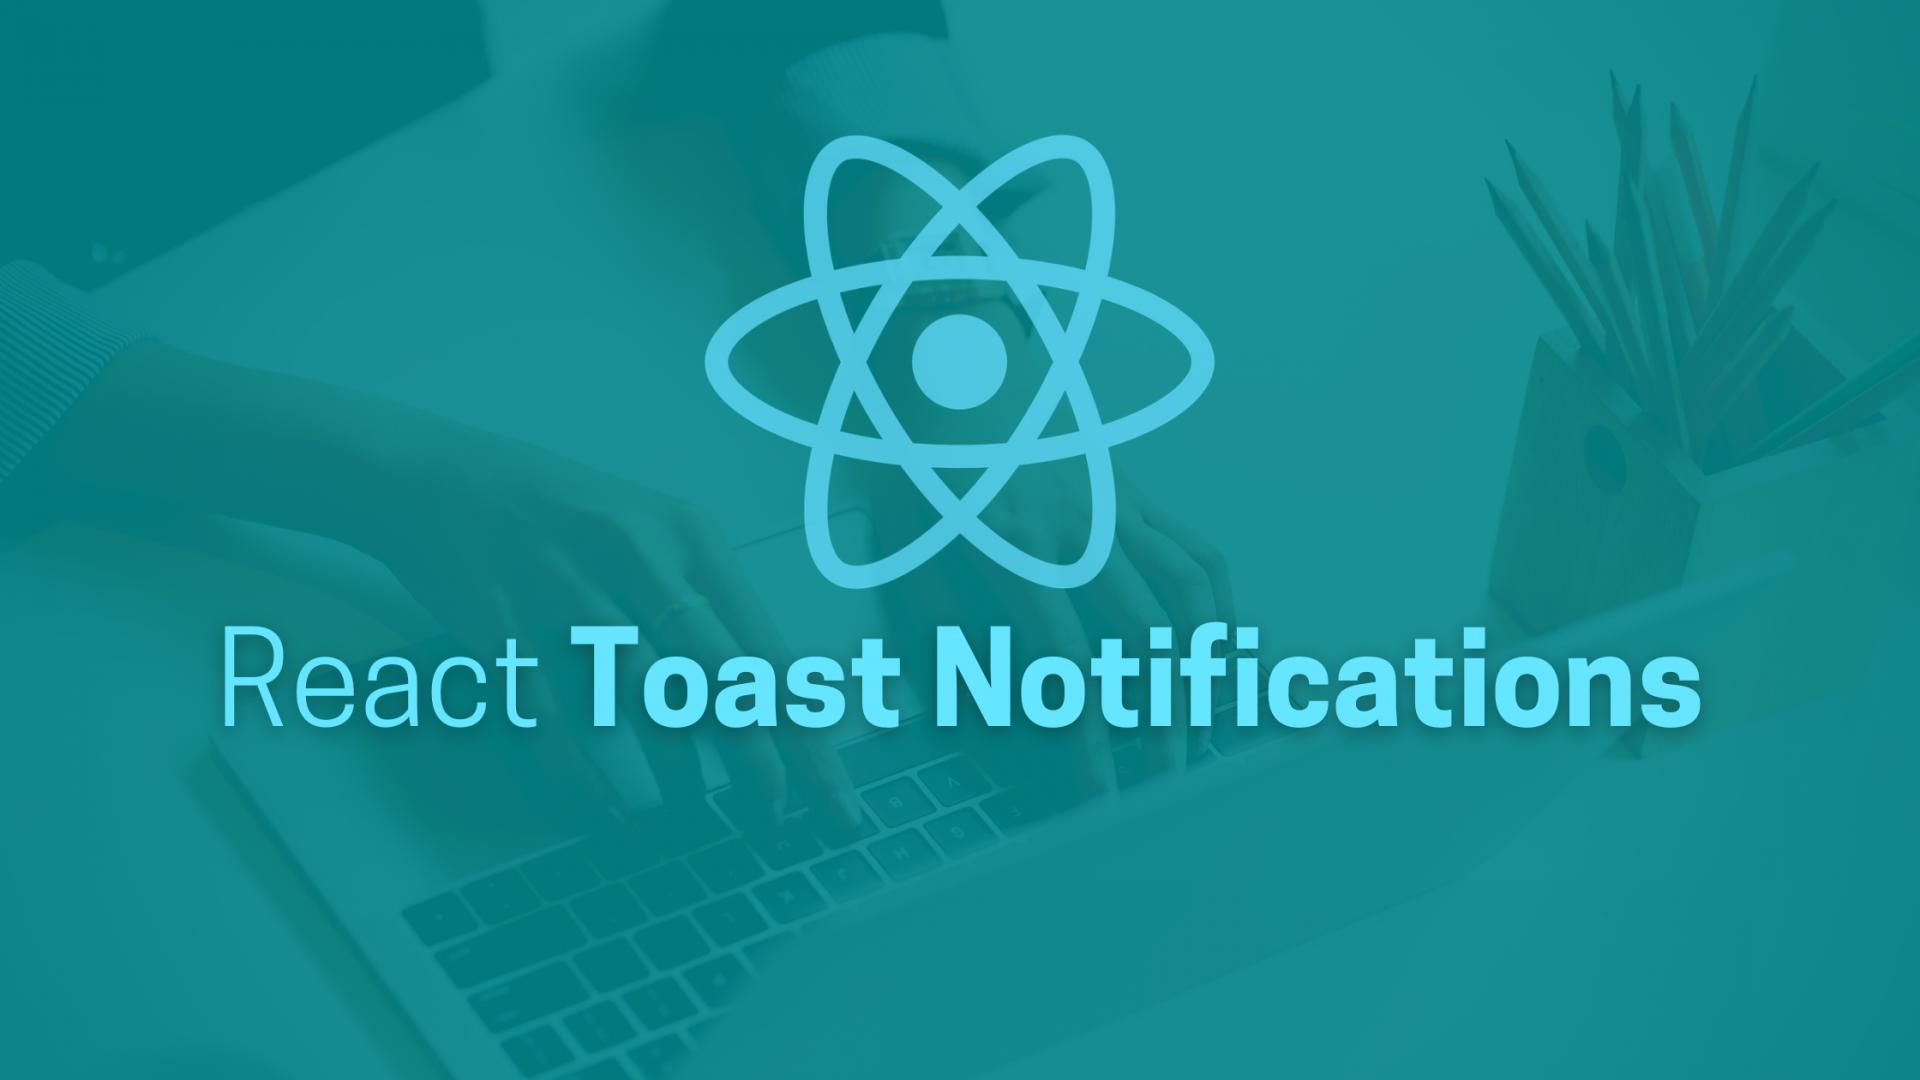 Getting Started on React Toast Notifications